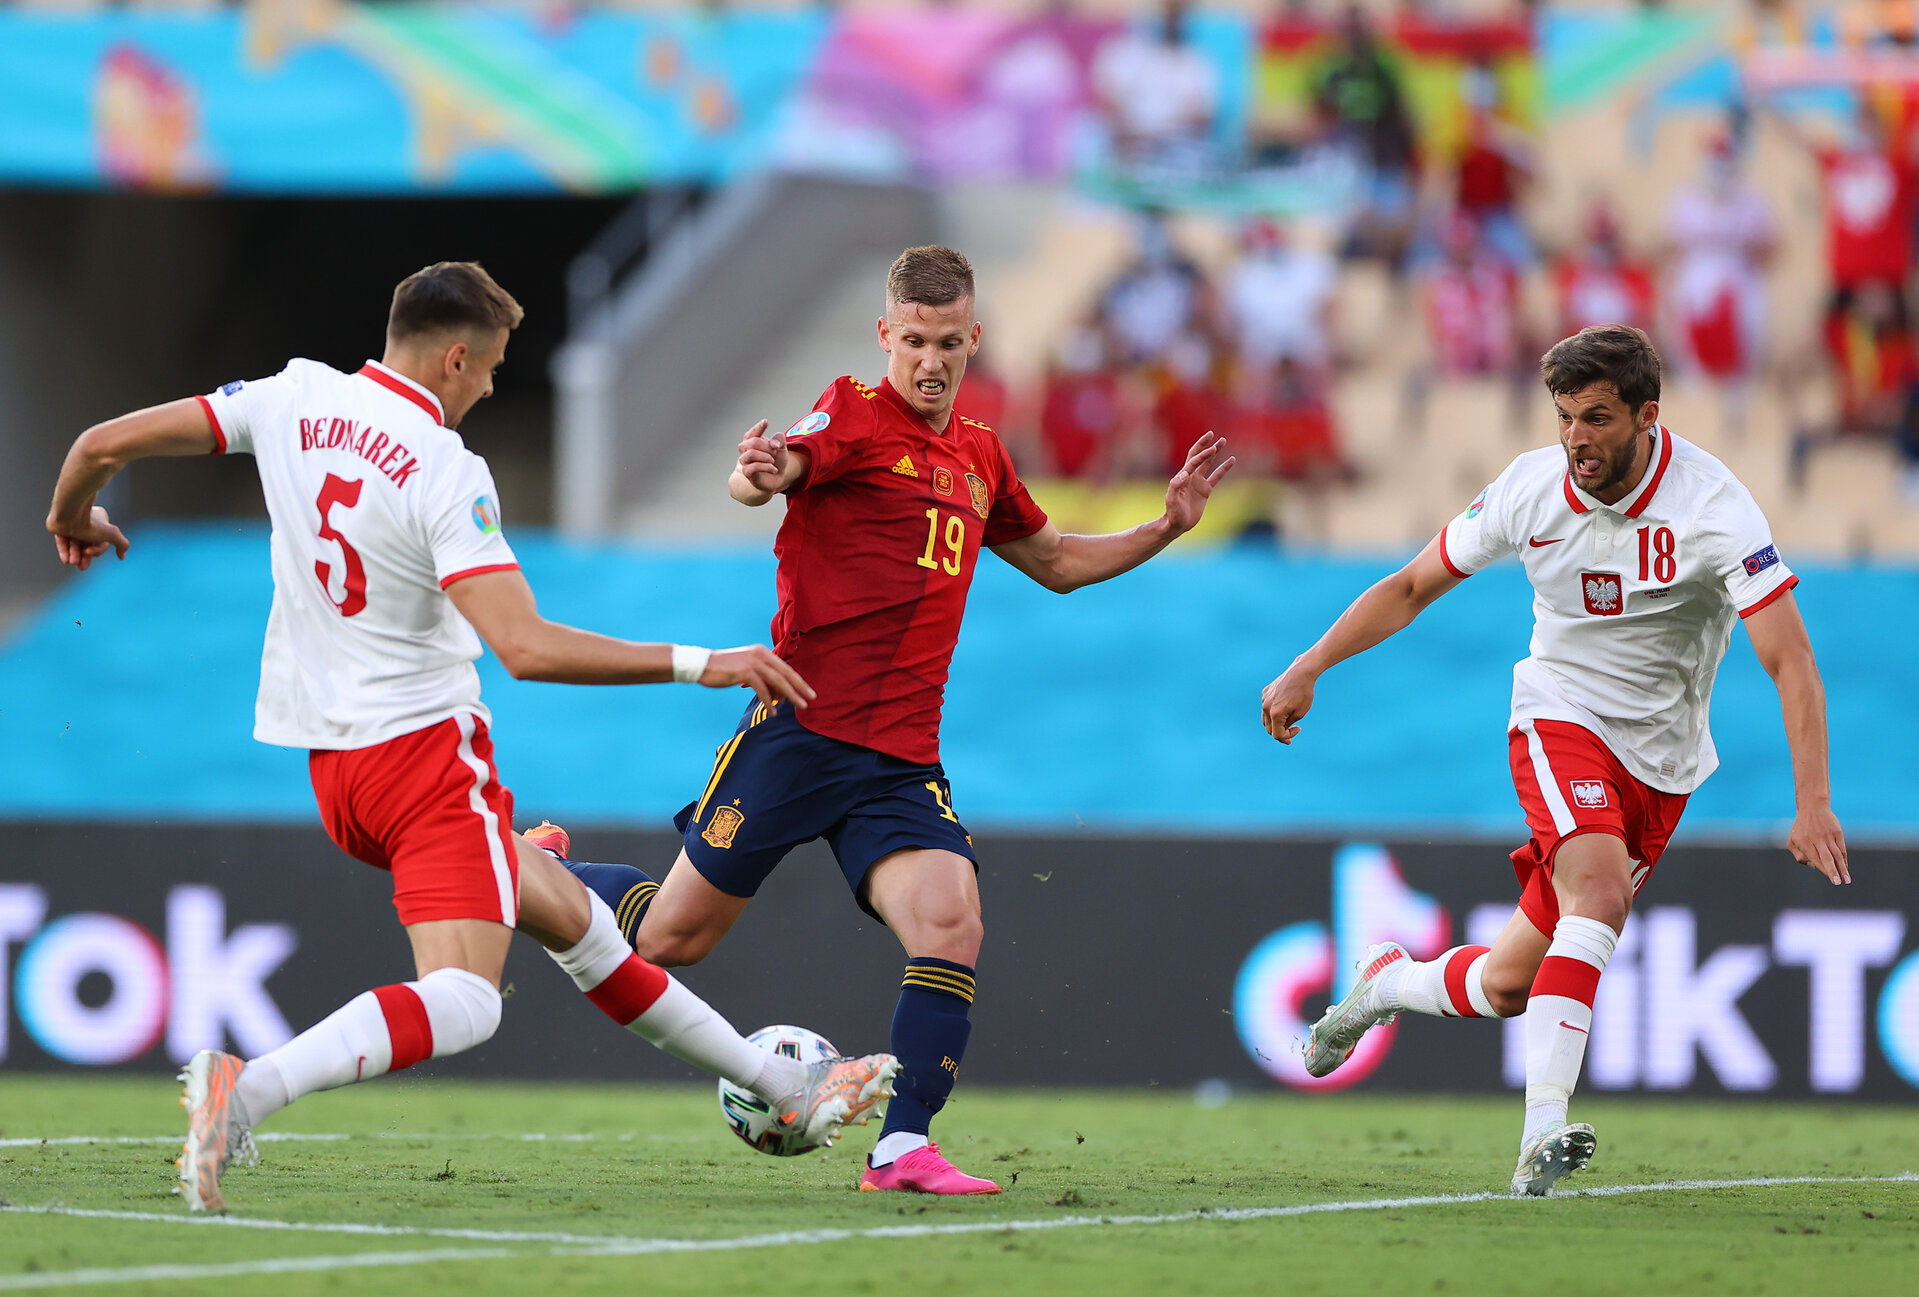 SEVILLE, SPAIN - JUNE 19: Dani Olmo of Spain shoots whilst under pressure from Jan Bednarek and Bartosz Bereszynski of Poland during the UEFA Euro 2020 Championship Group E match between Spain and Poland at Estadio La Cartuja on June 19, 2021 in Seville, Spain. (Photo by Fran Santiago - UEFA/UEFA via Getty Images)